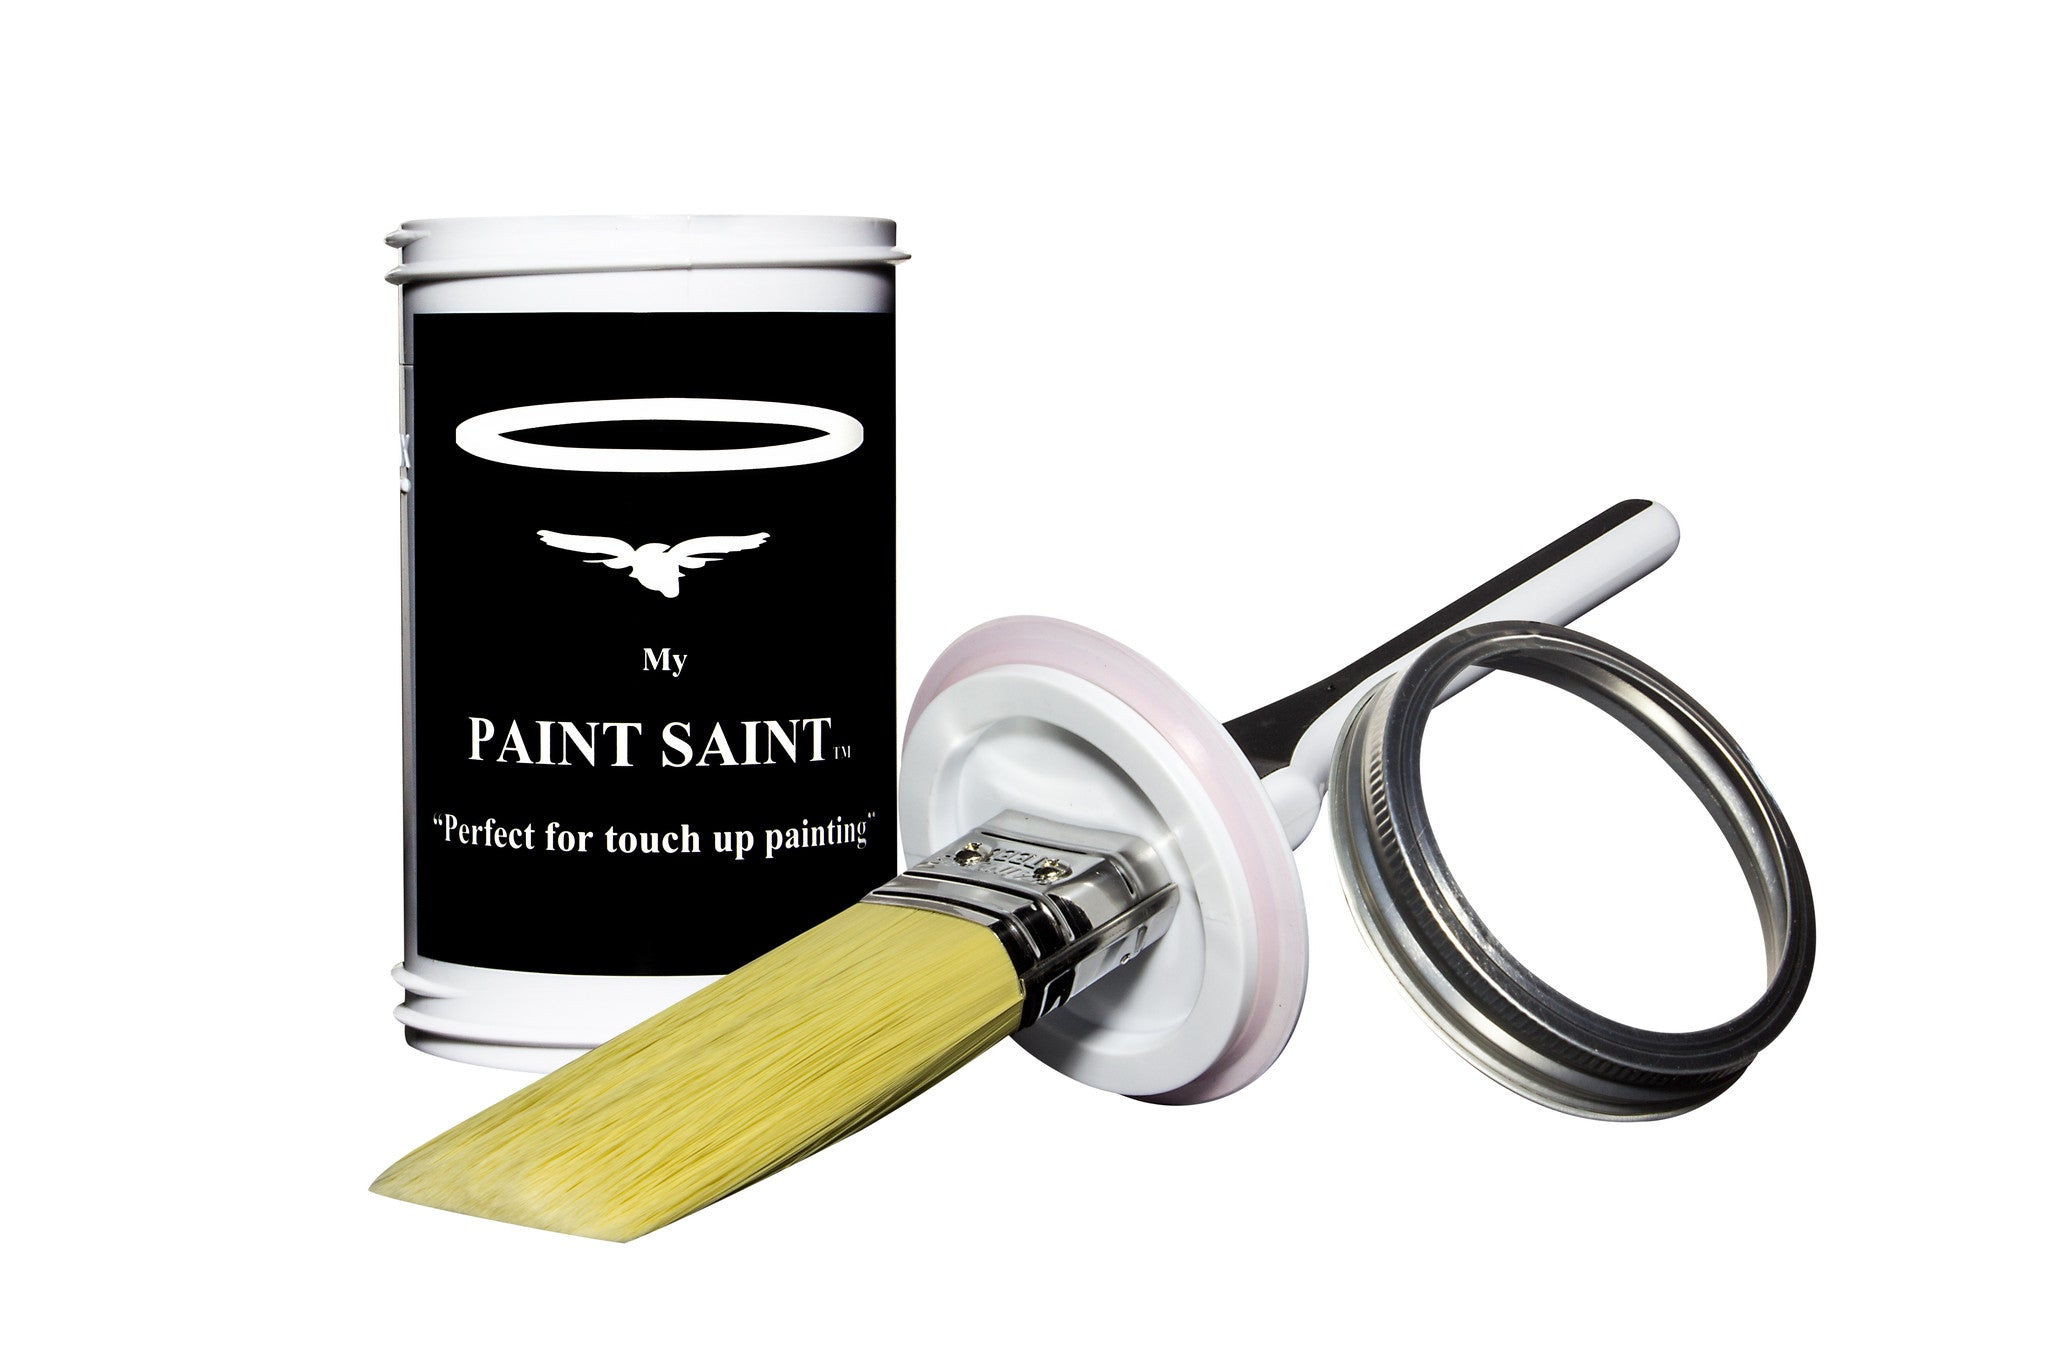 Touch Up Paint Brush and can. Interior and Exterior Painting.